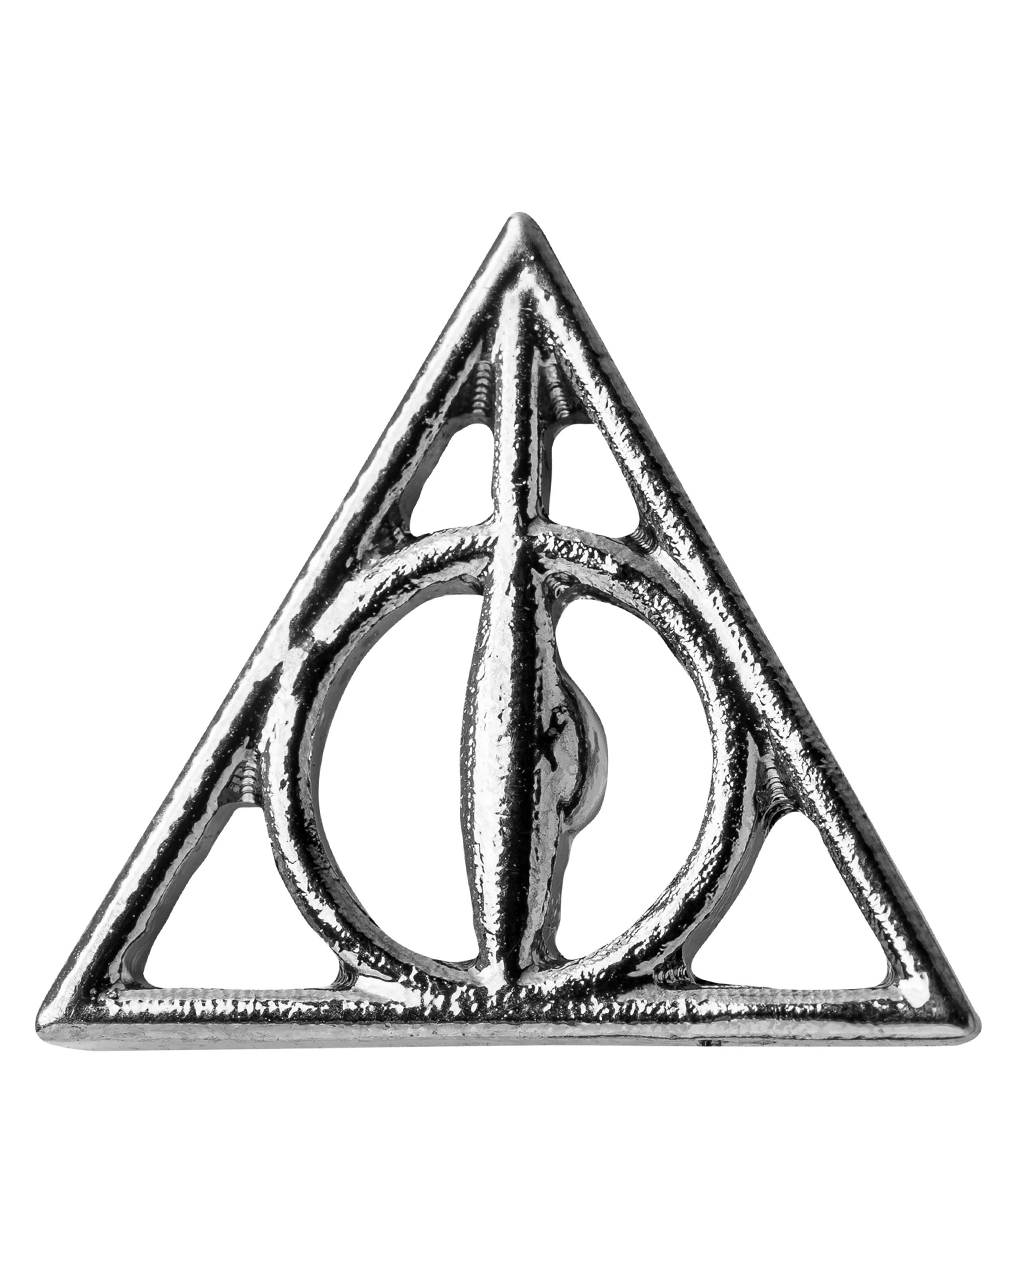 Harry potter deathly hallows tie with pin to buy horror shop harry potter deathly hallows tie with pin biocorpaavc